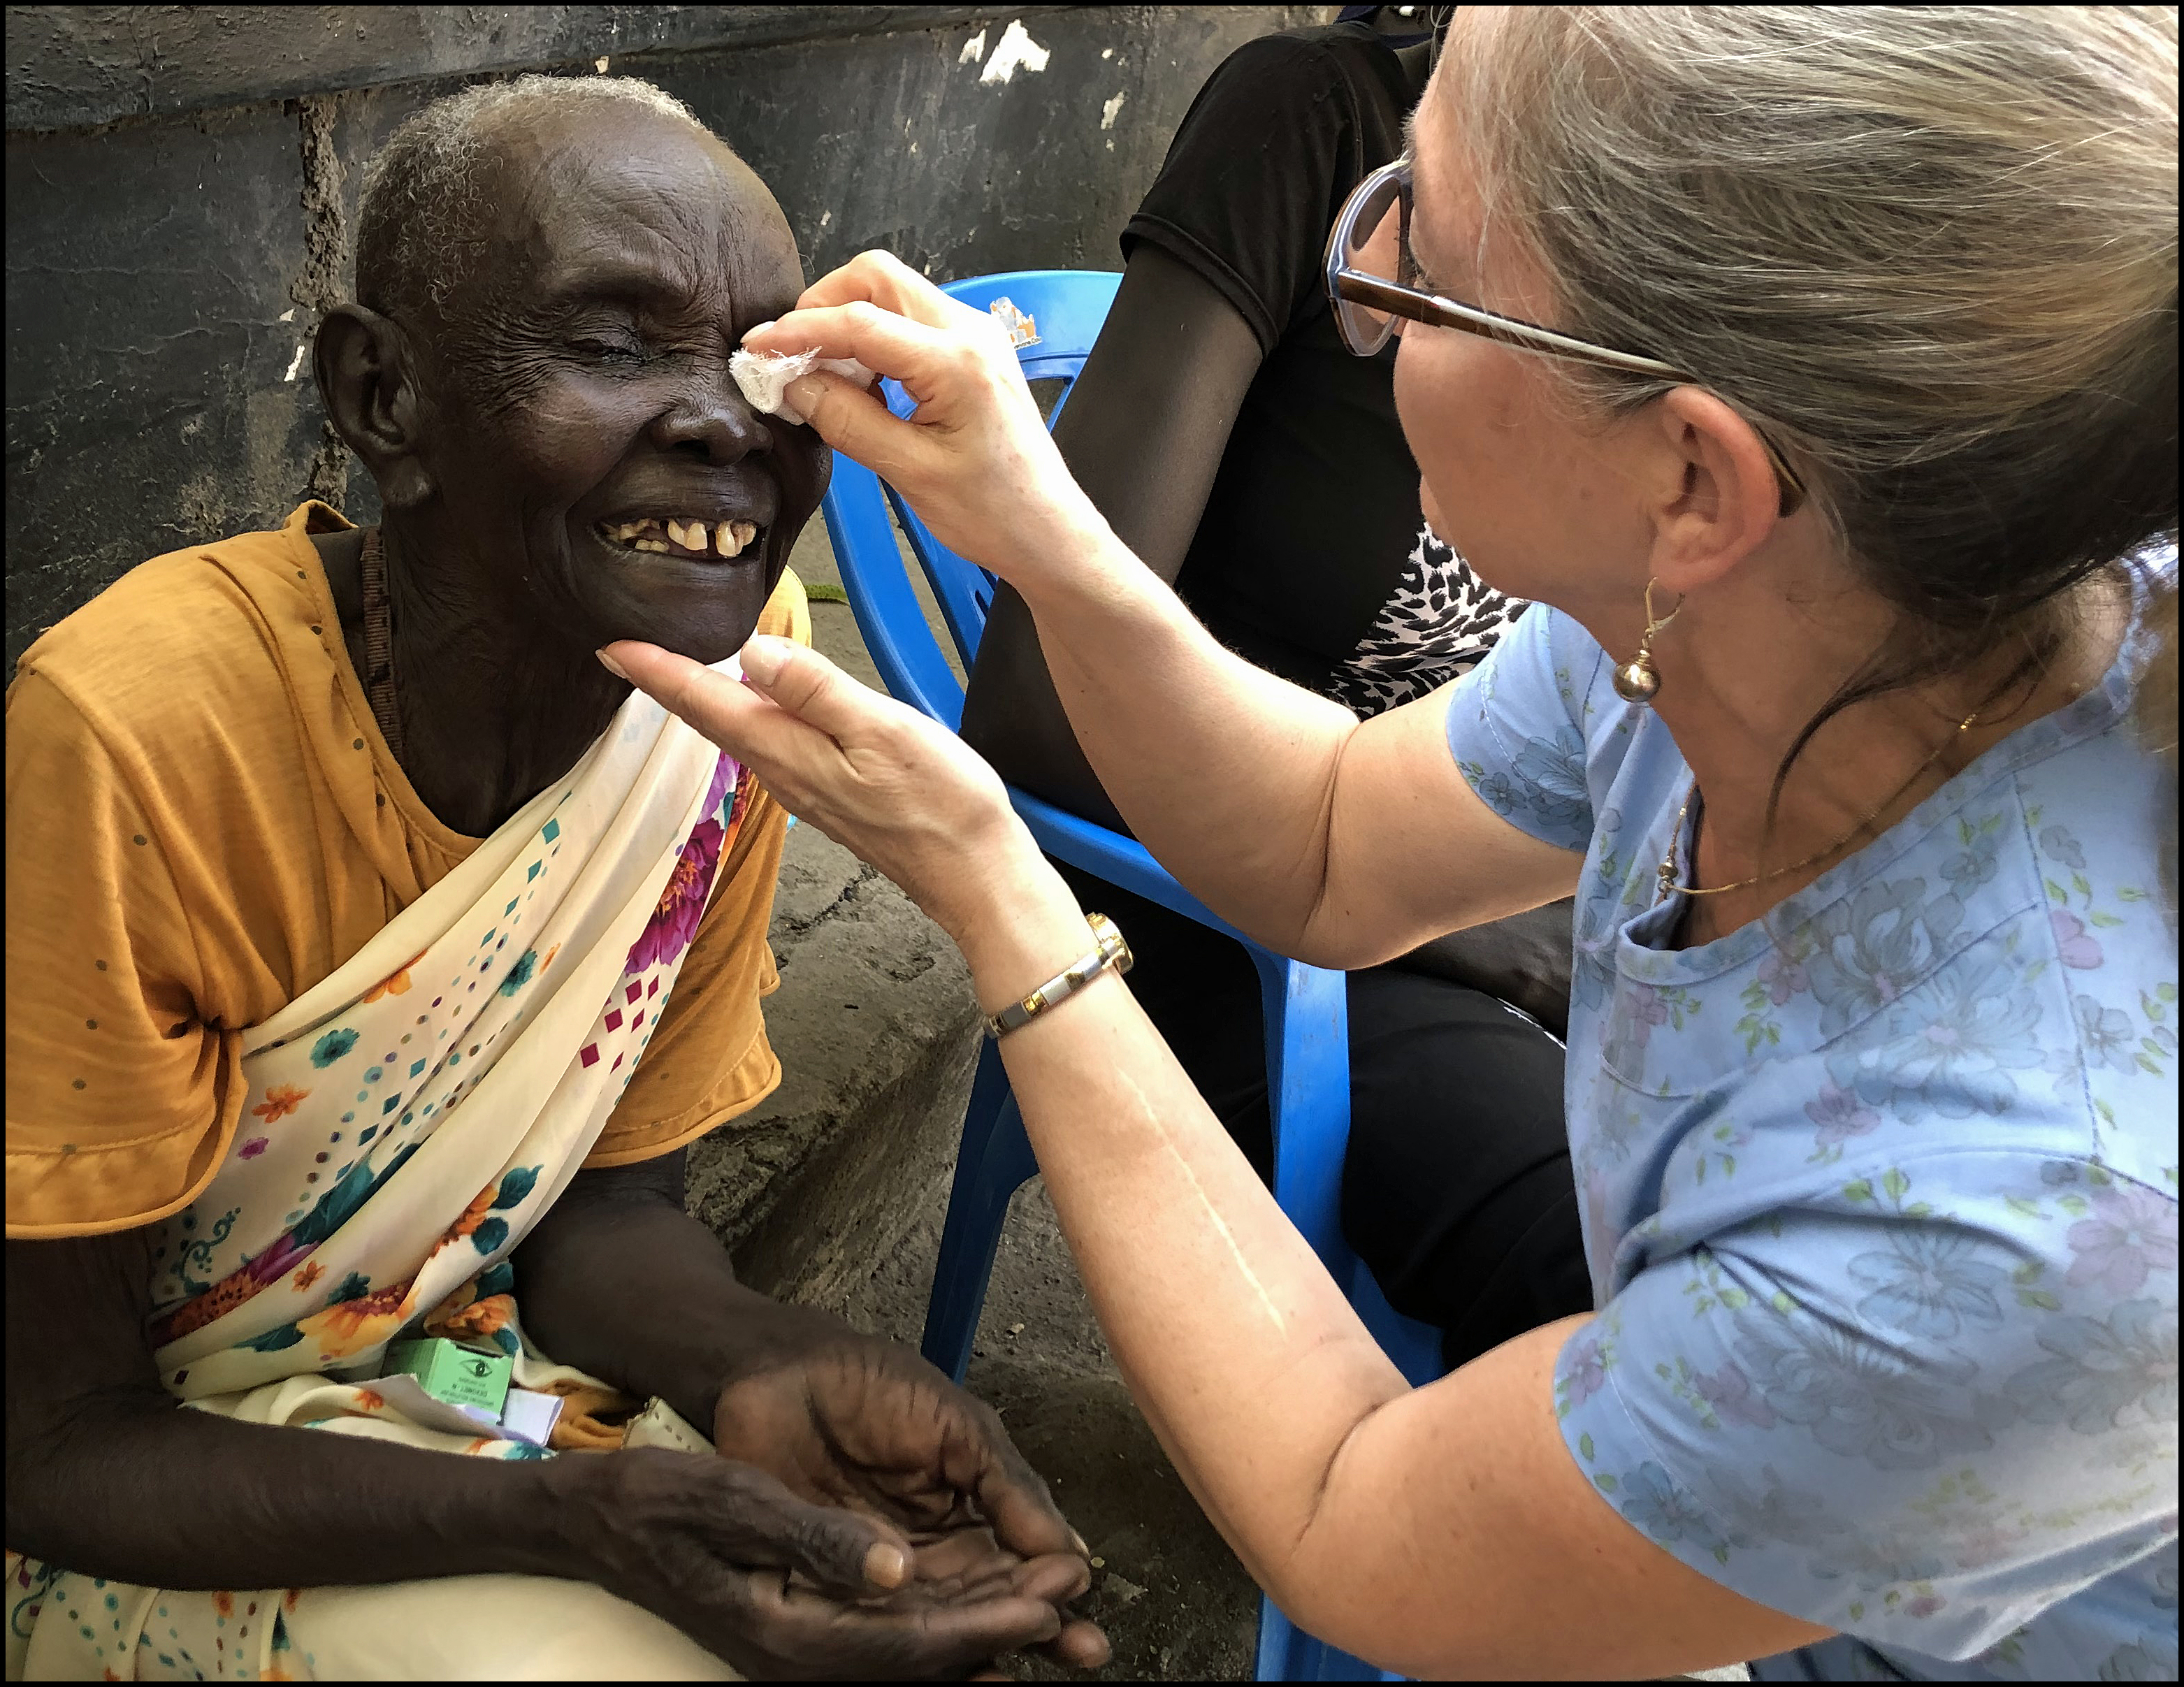 Restoring Sight in South Sudan